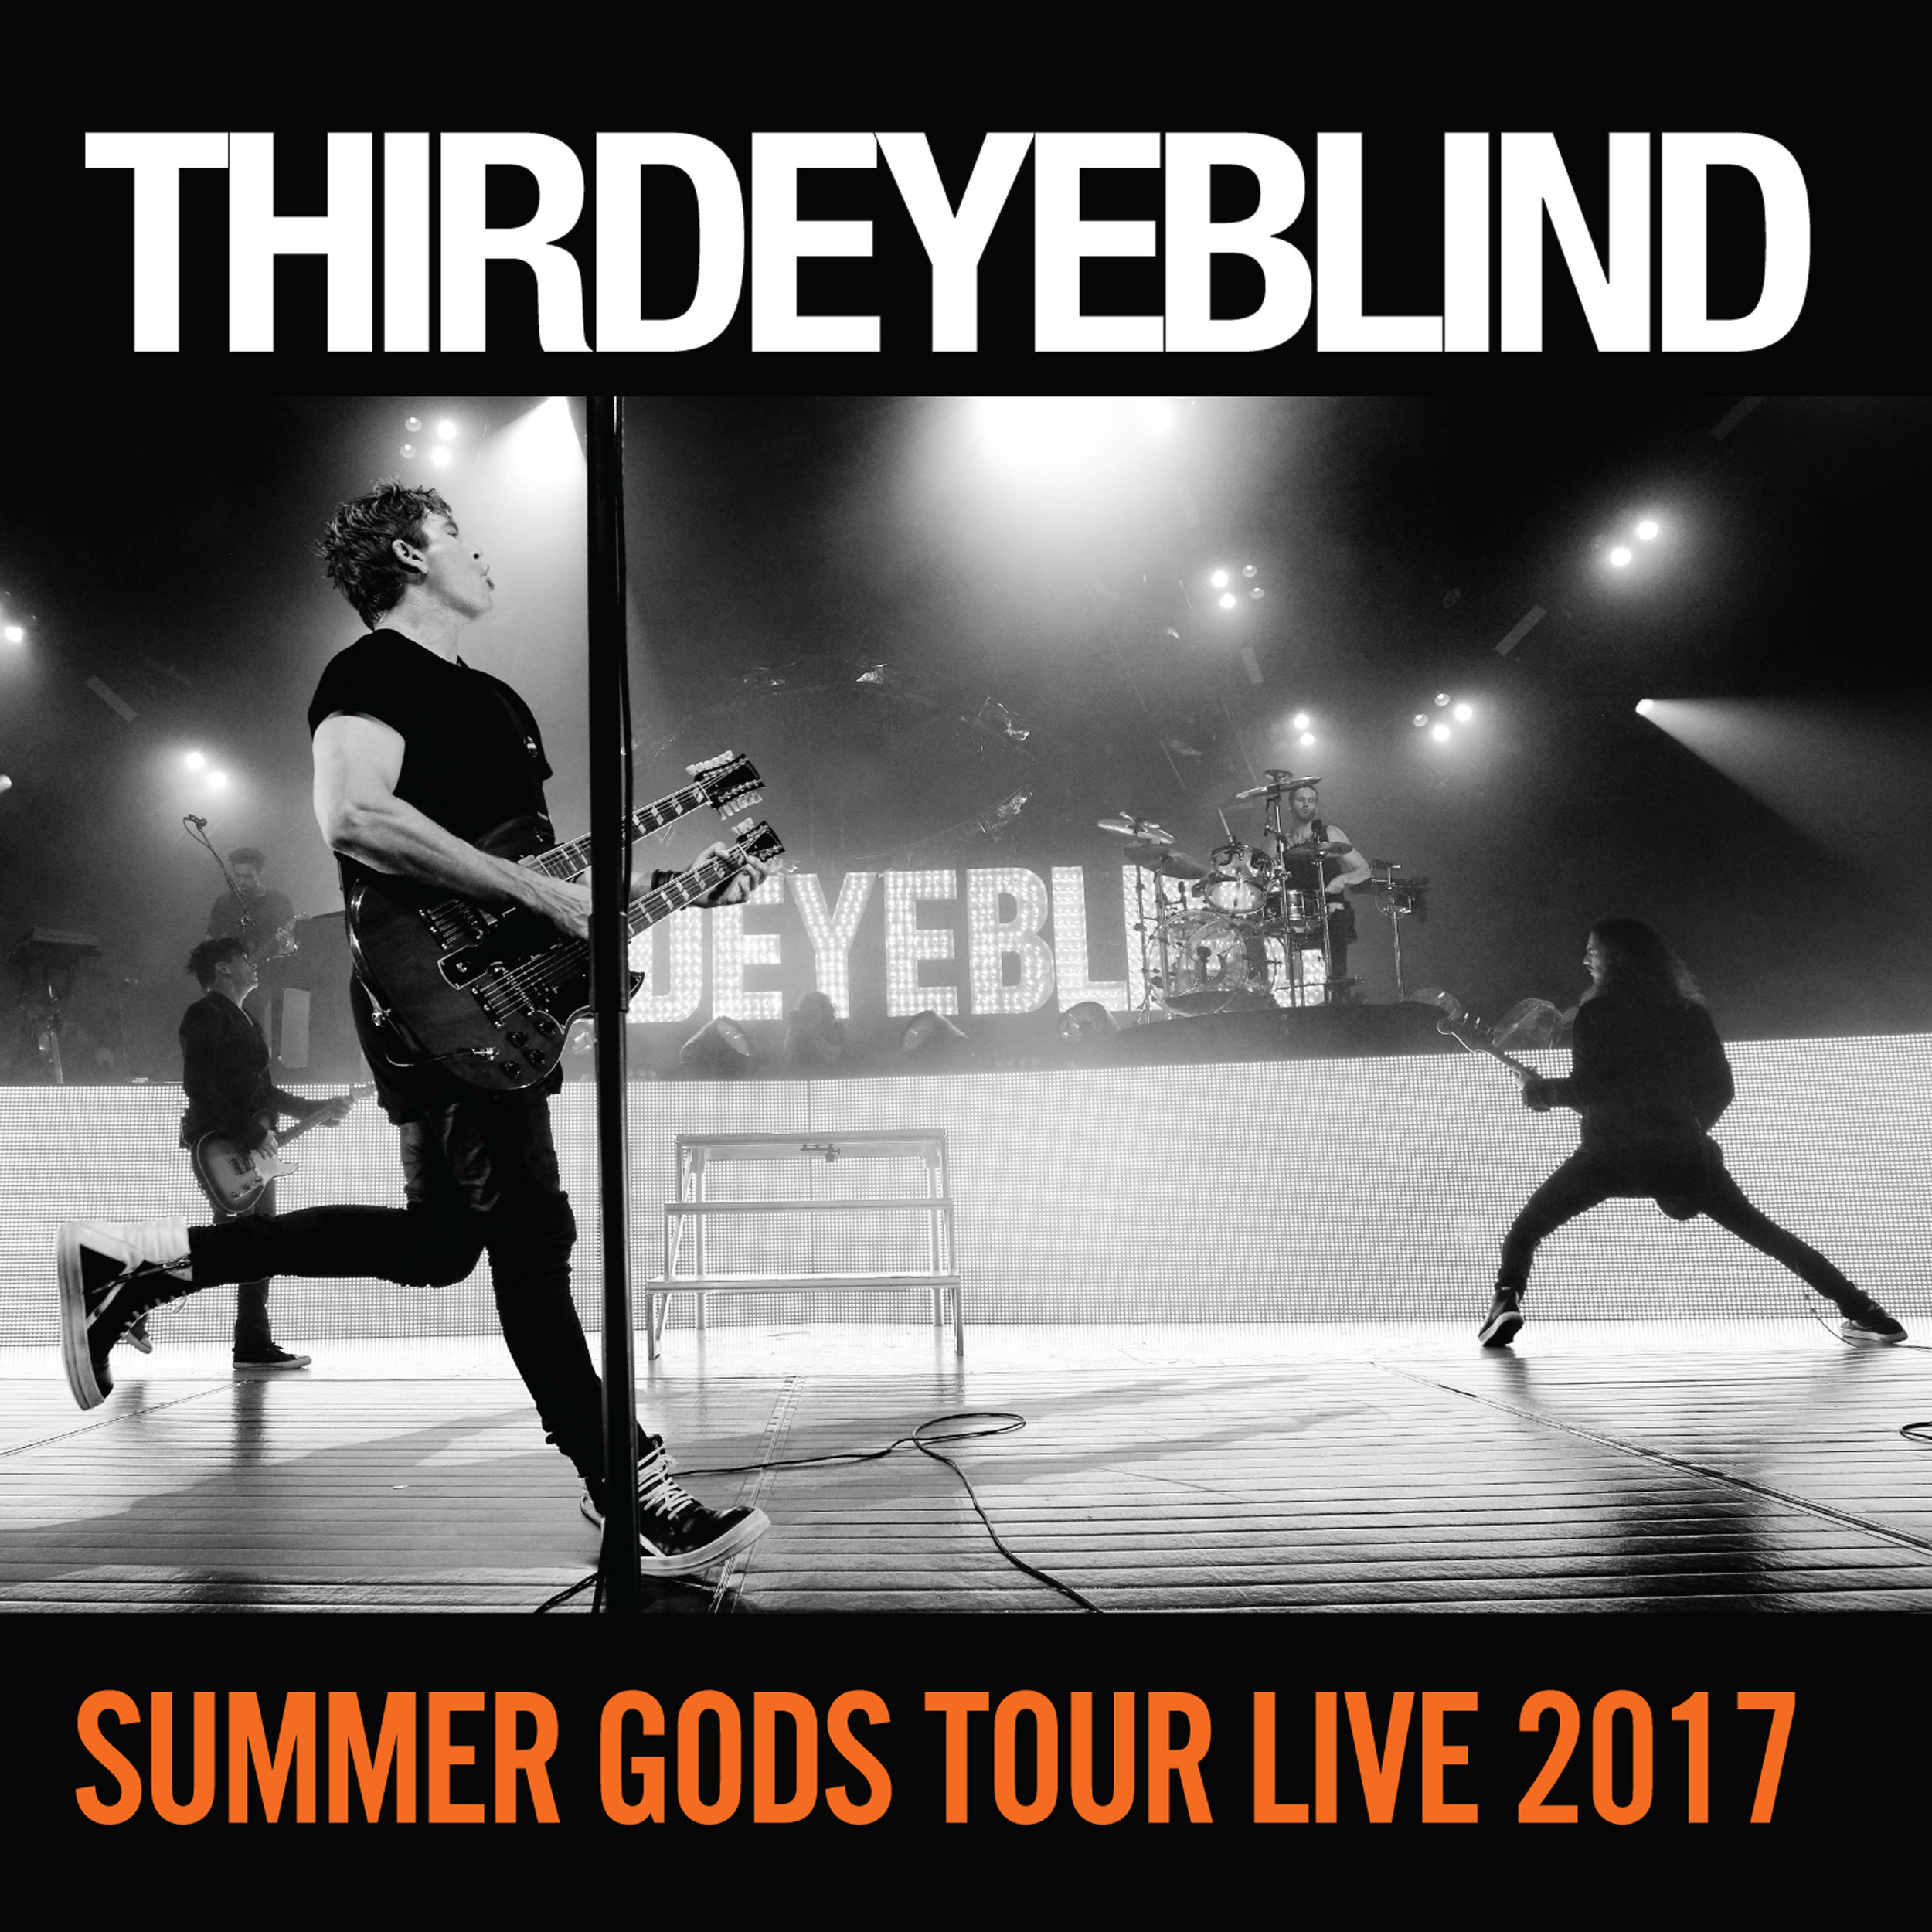 Third Eye Blind - Summer Gods Tour Live 2017   Piper Payne   Mega Collider Records